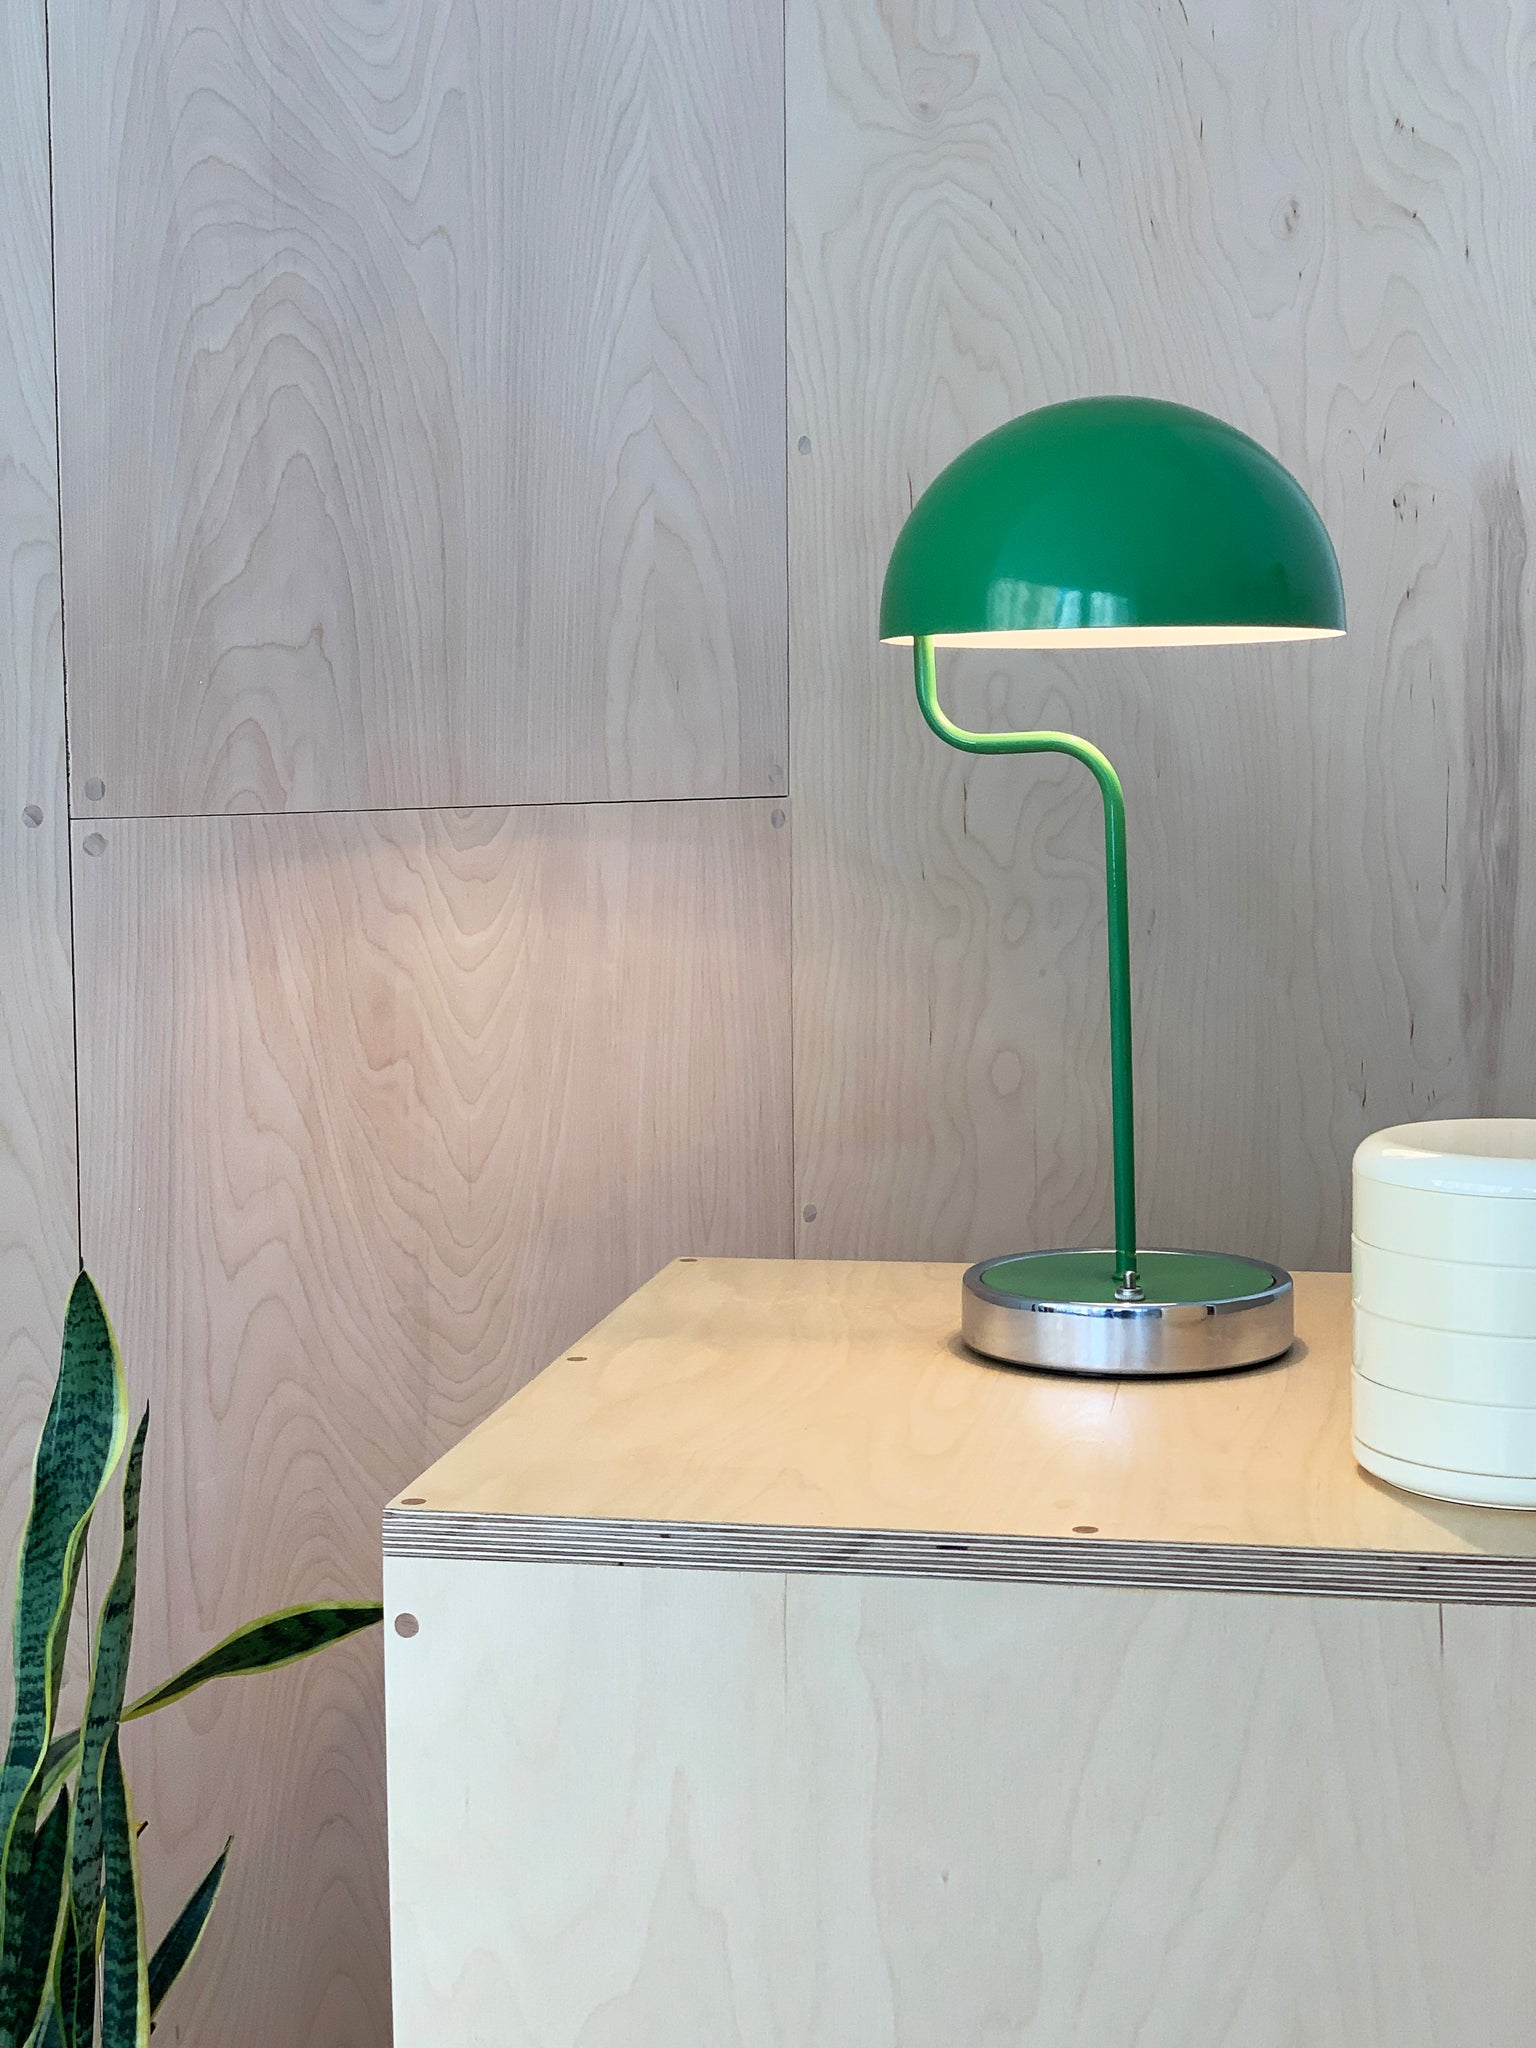 1960s Curvy Green Enameled Mushroom Table Lamp